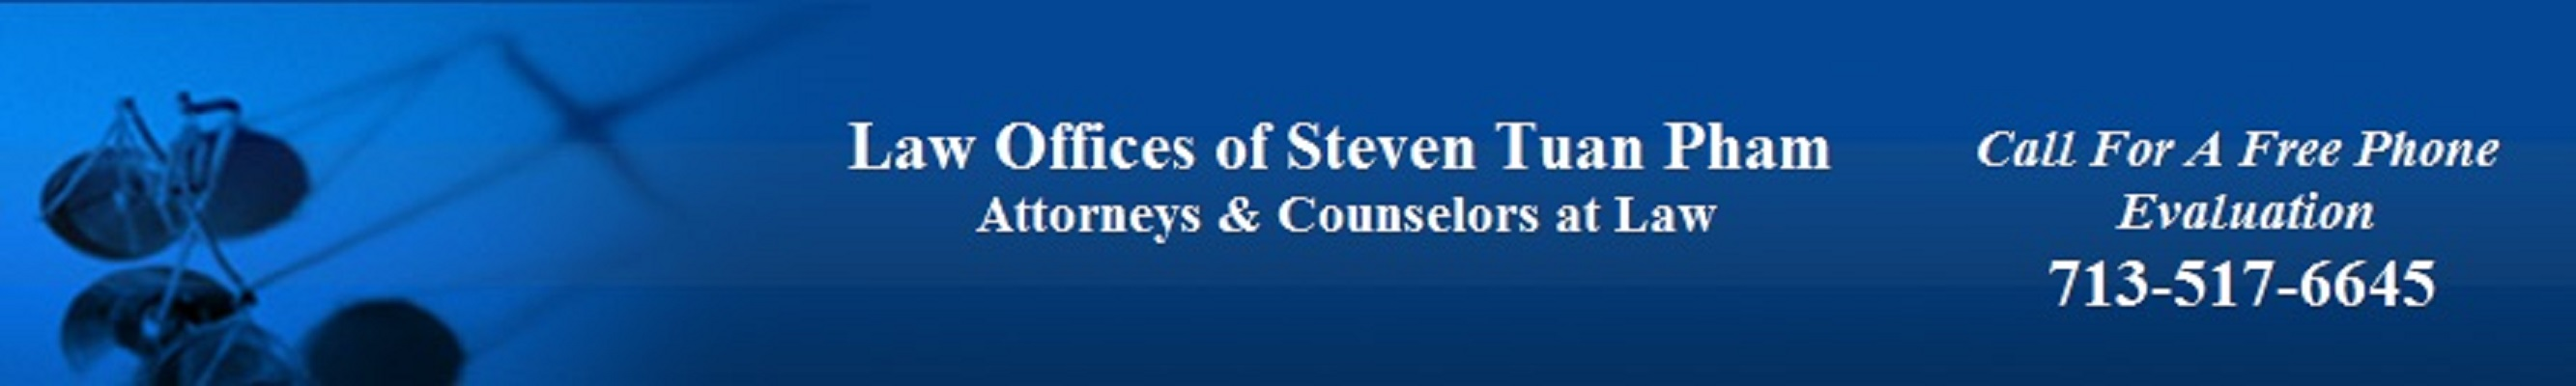 Law Offices of Steven Tuan Pham - Houston Immigration Attorneys and Houston Immigration Lawyers